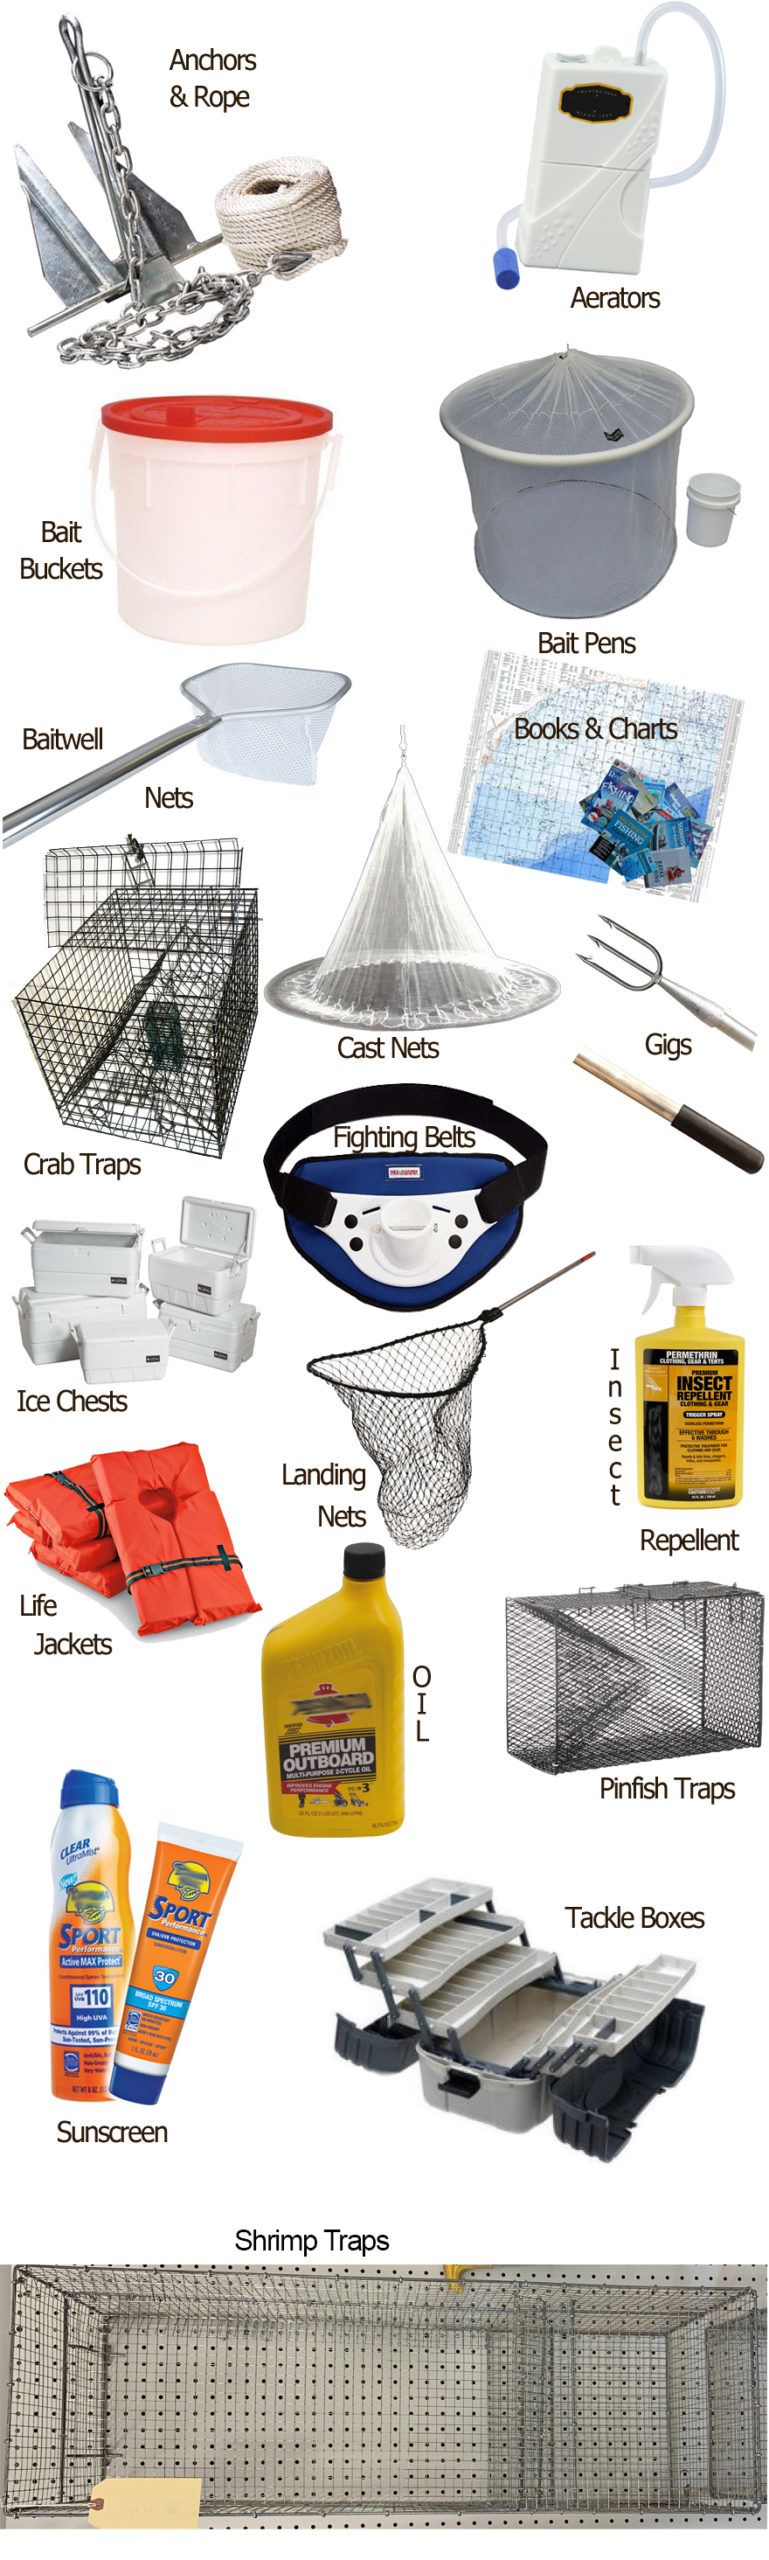 Accessories at Bucktail Bait & Tackle